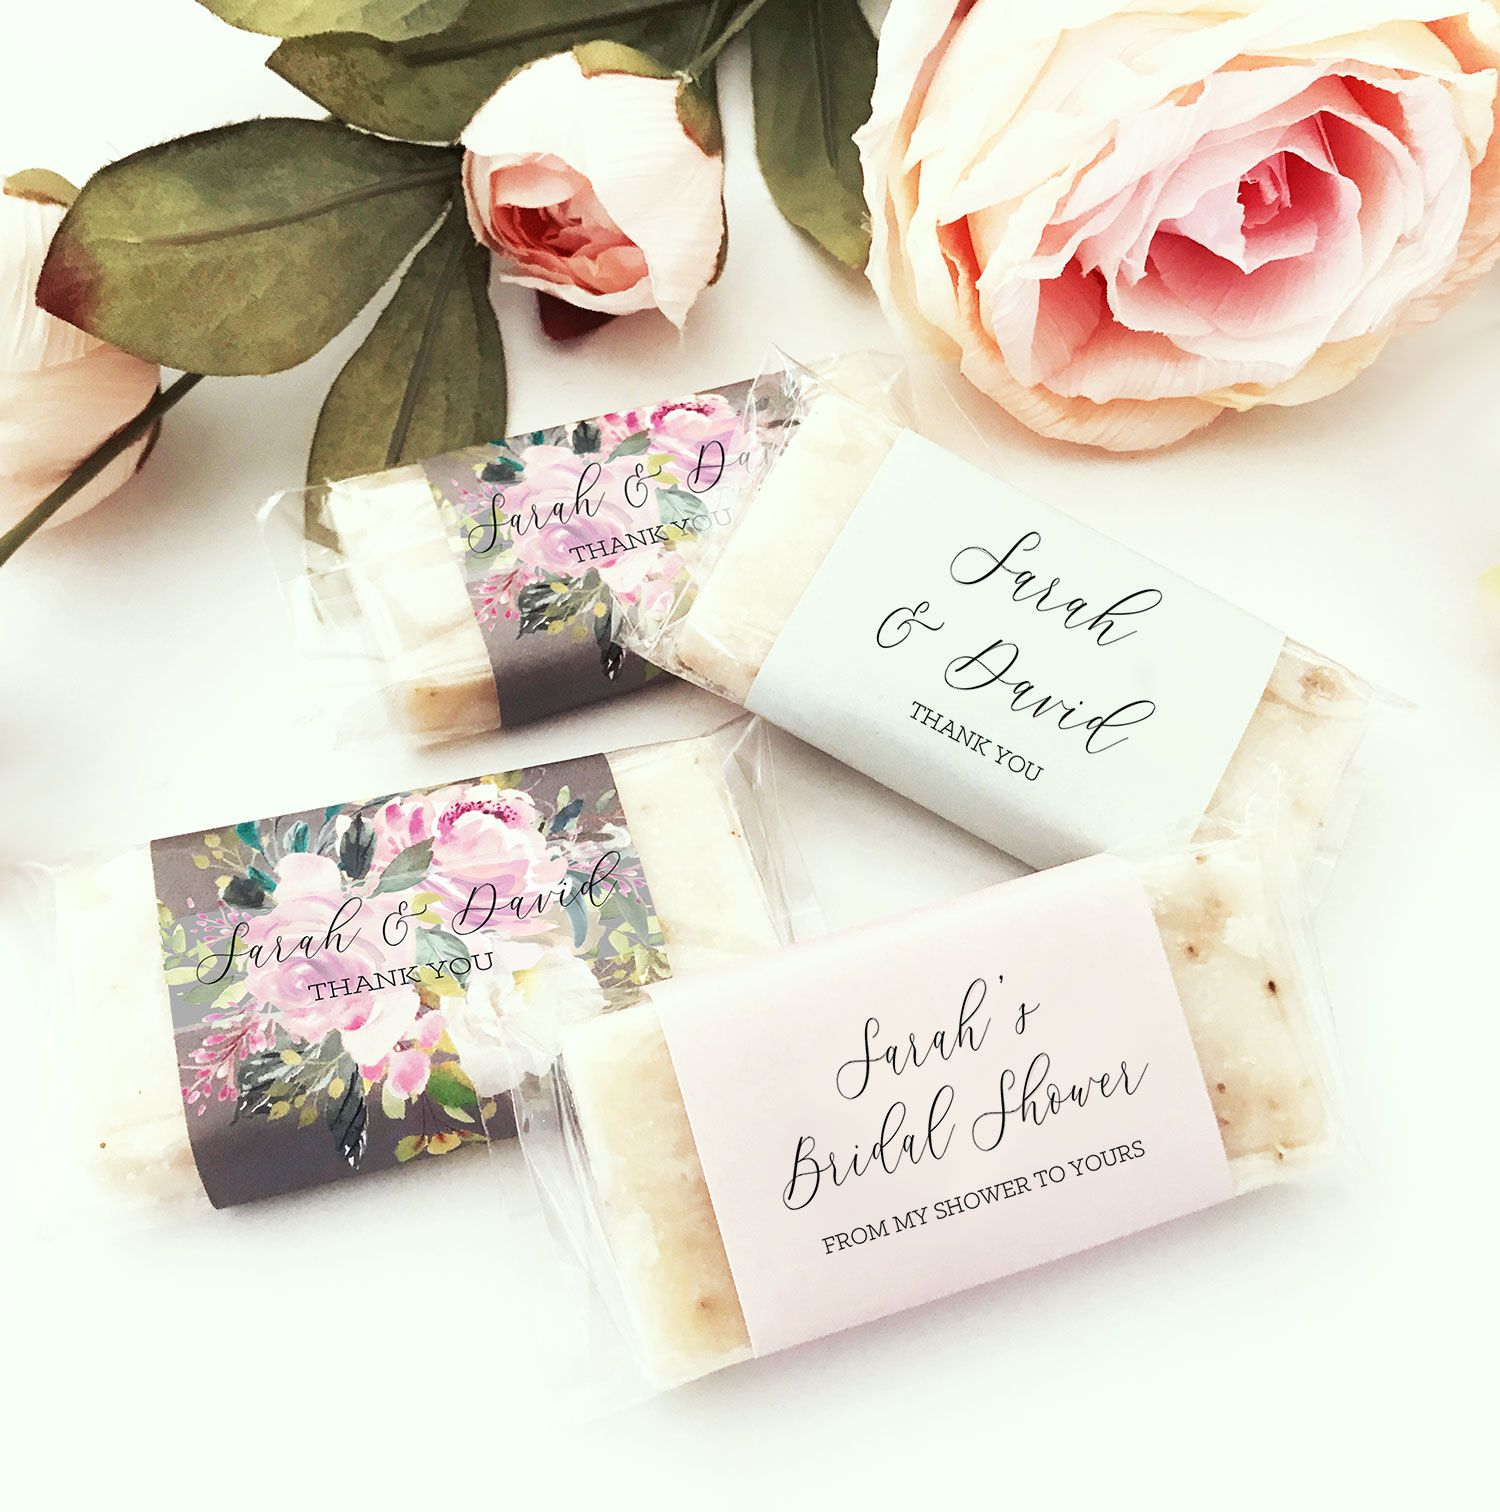 Wedding Soap Favors - Unique Wedding Favor Ideas - Cute